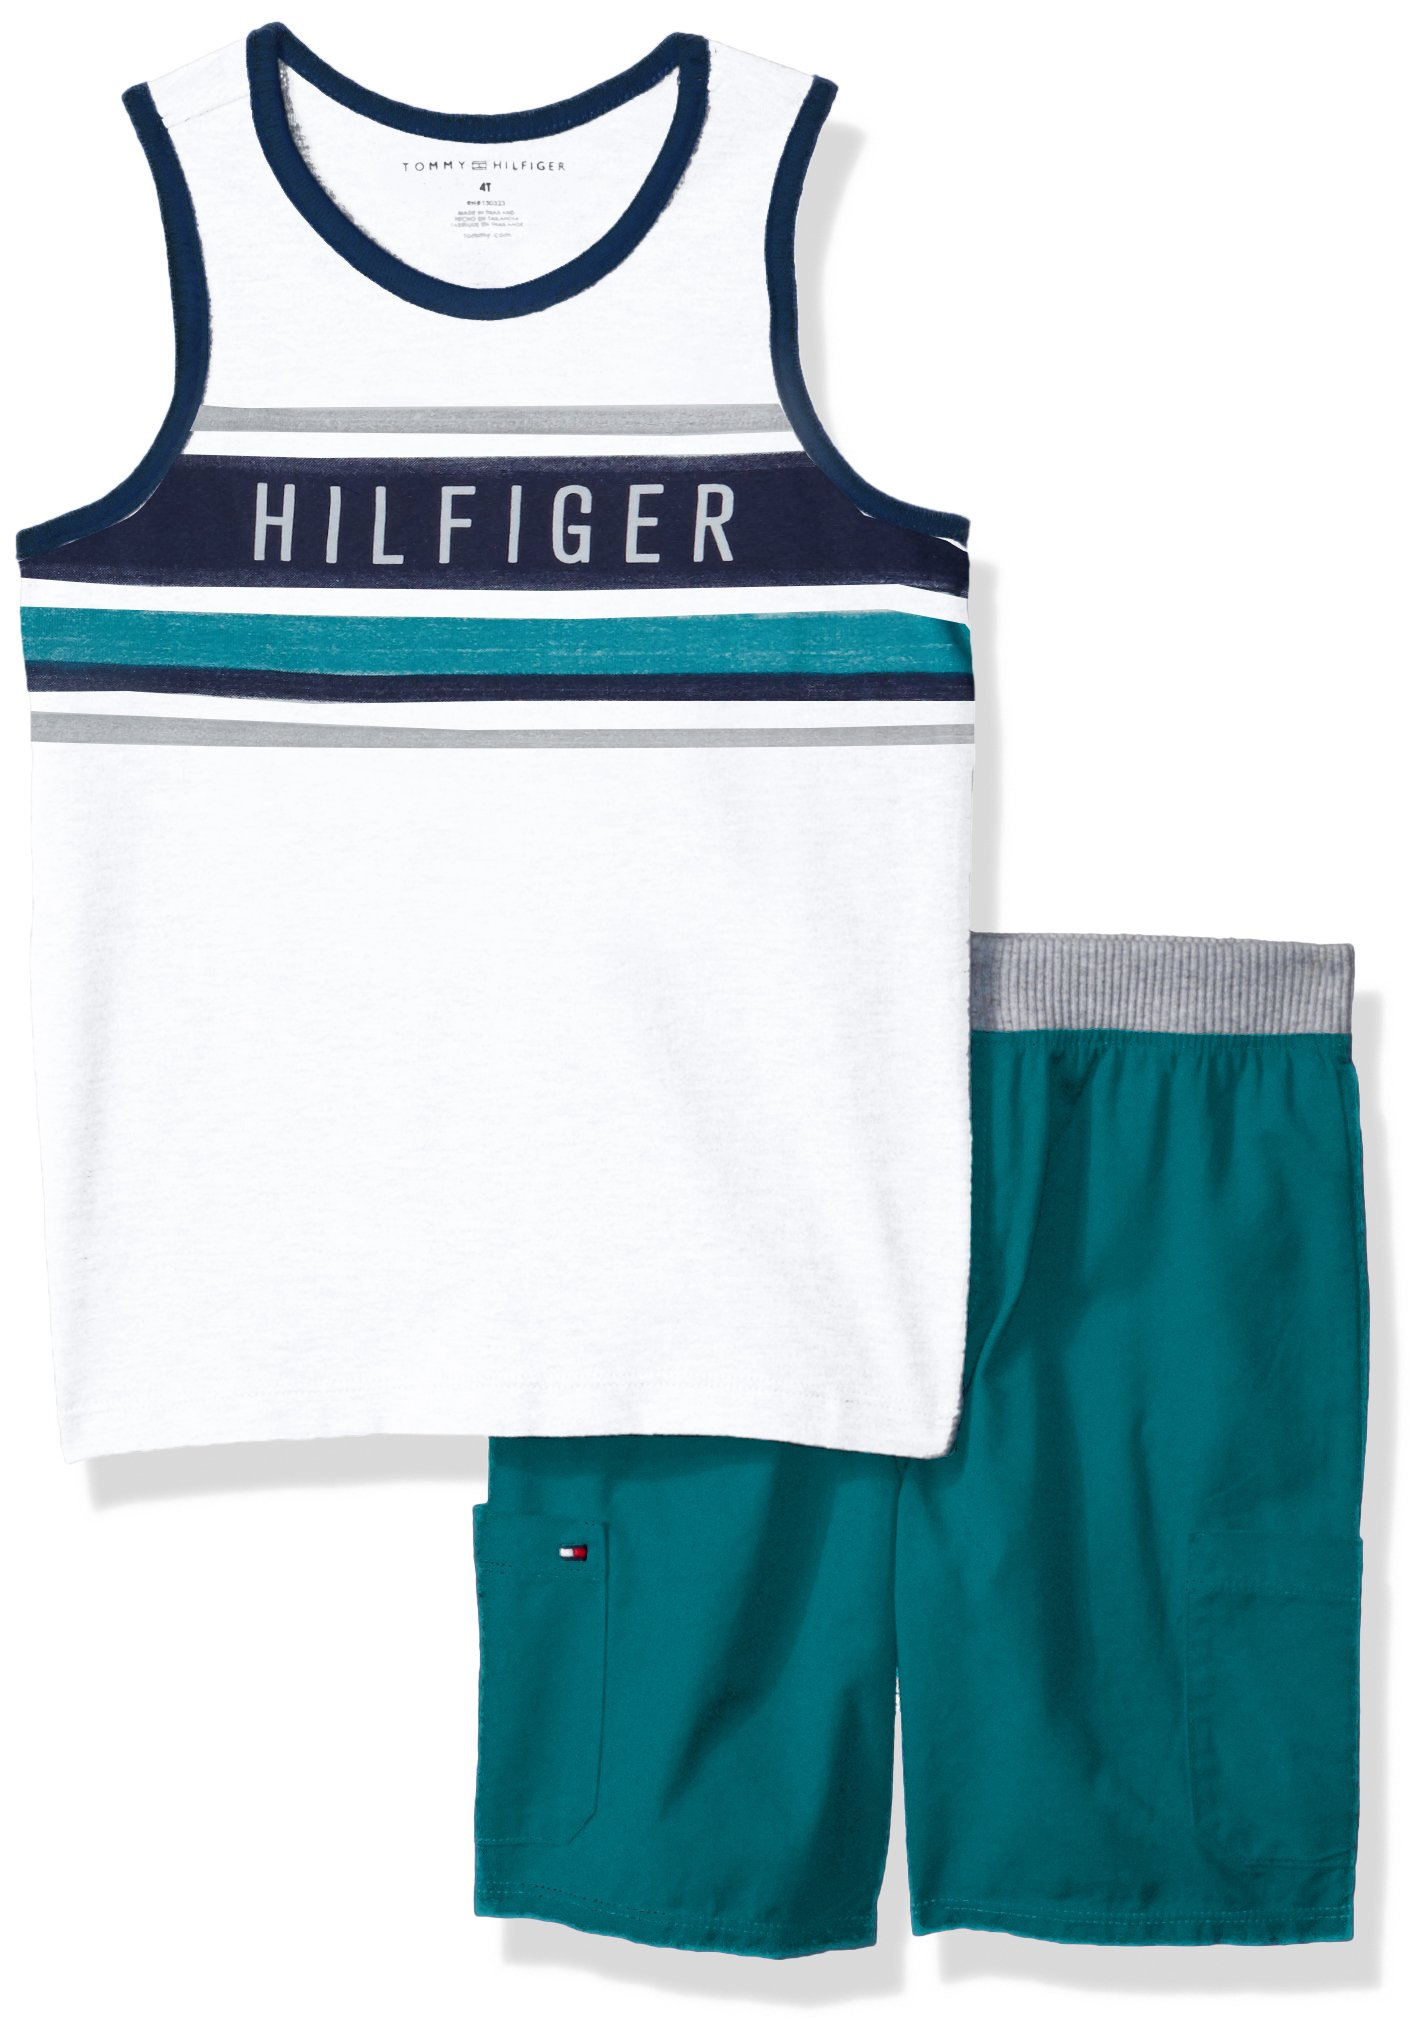 Tommy Hilfiger Toddler Boys' 2 Pieces Tank Shorts Set, White/Green, 3T